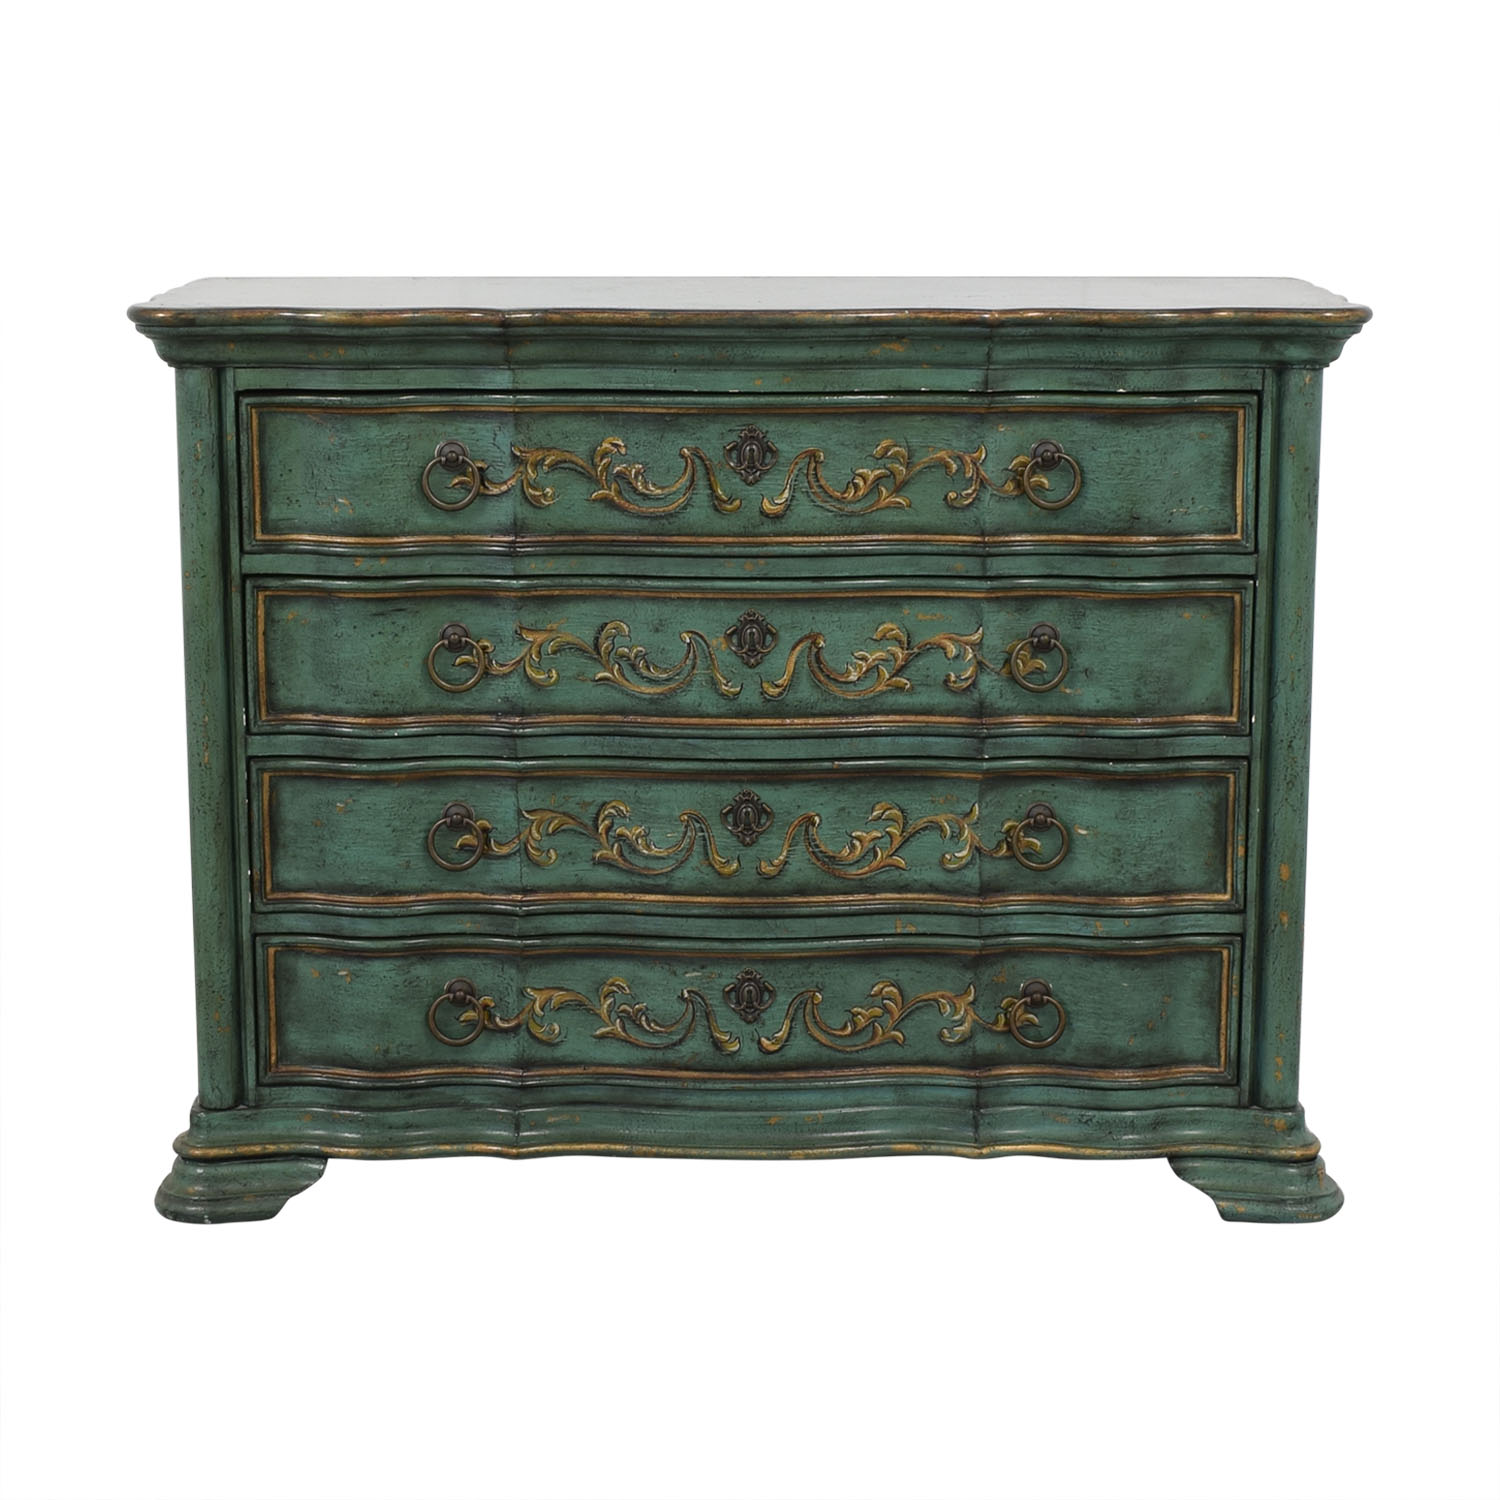 shop Home Meridian Home Meridian Accents Drawer Chest online